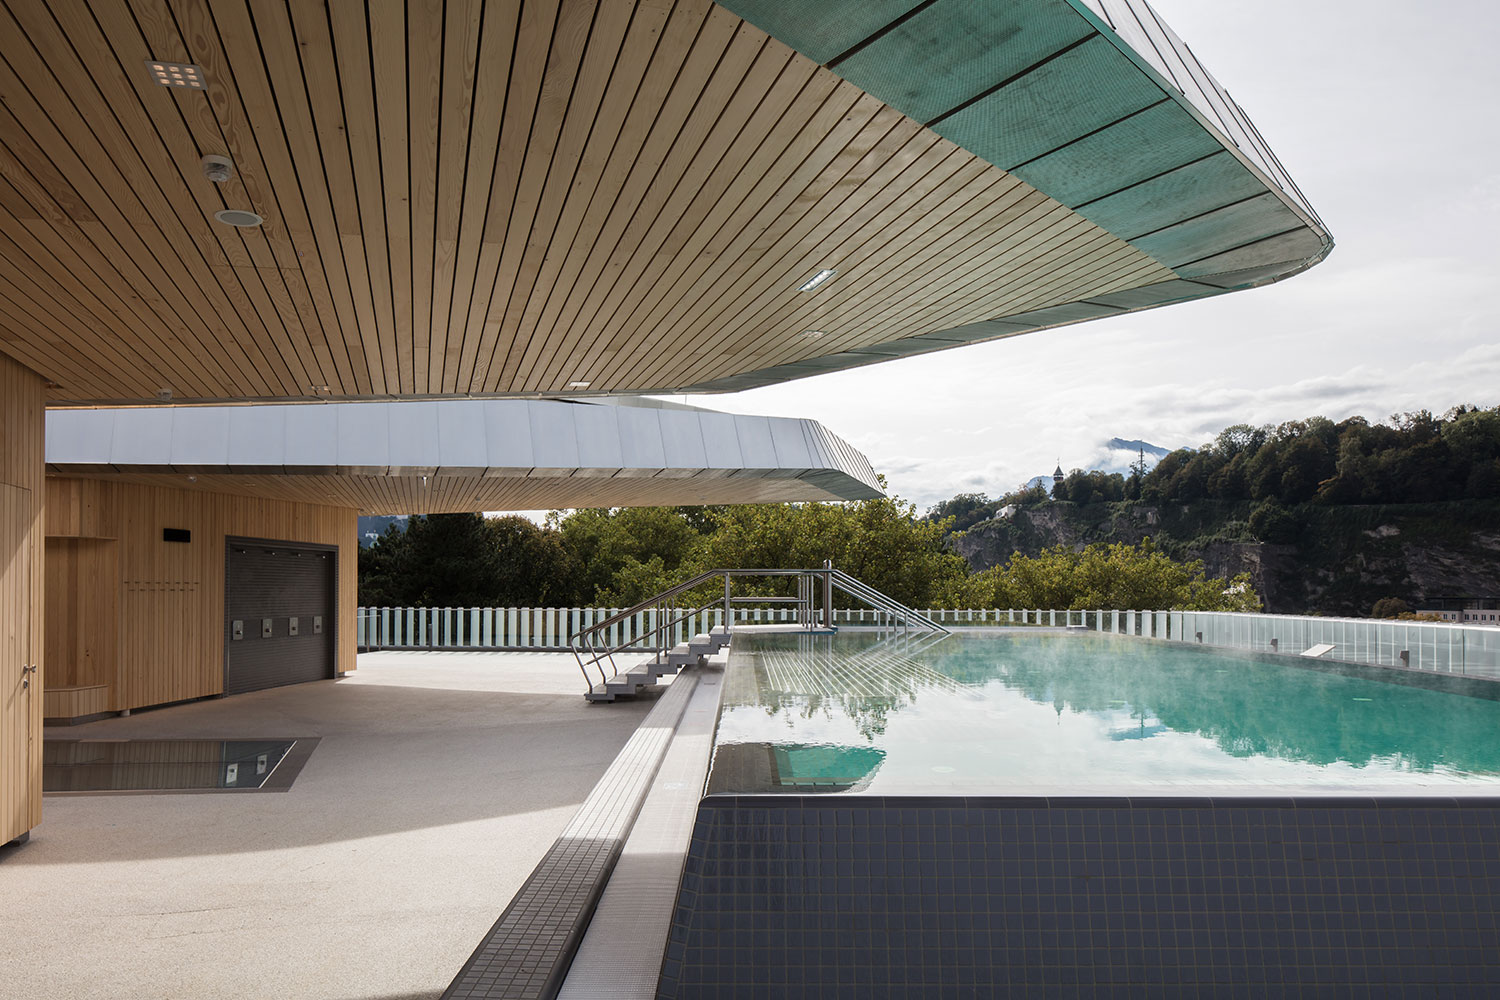 Outdoor pool with view above the city's rooftops Christian Richters │ Berger+Parkkinen Architekten